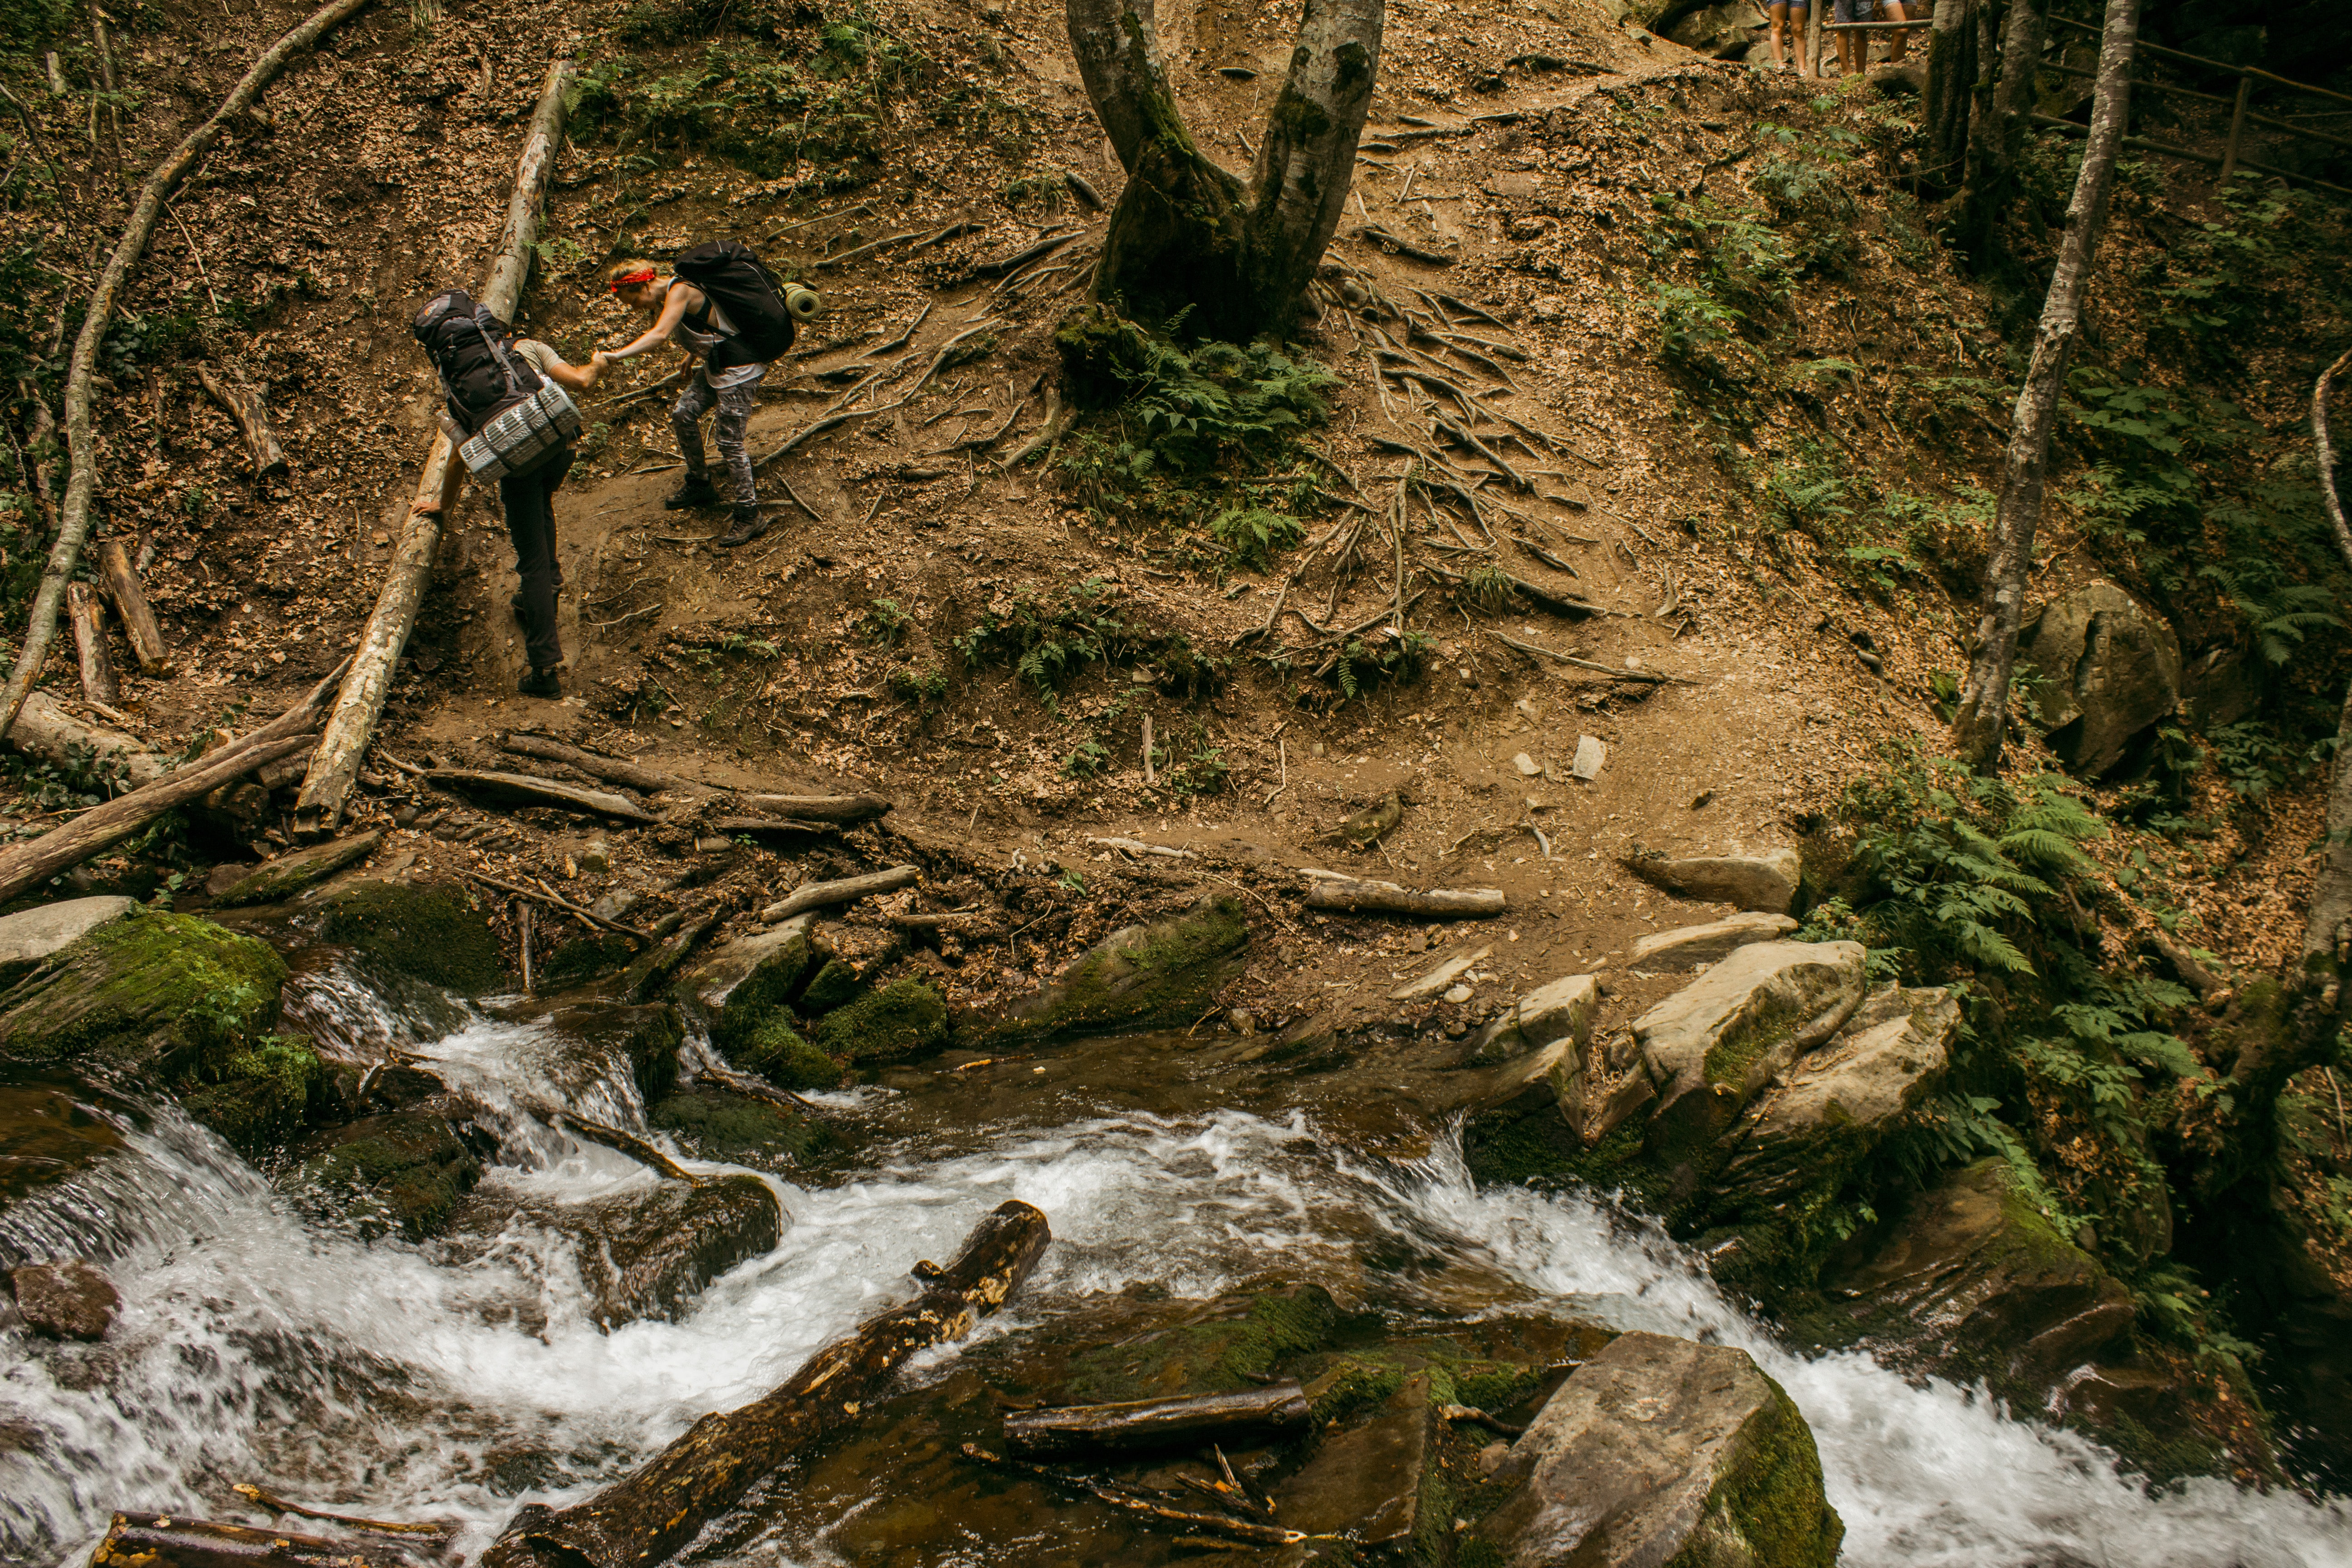 A hiker giving a hand to his friend during a descent from a steep slope by a forest creek